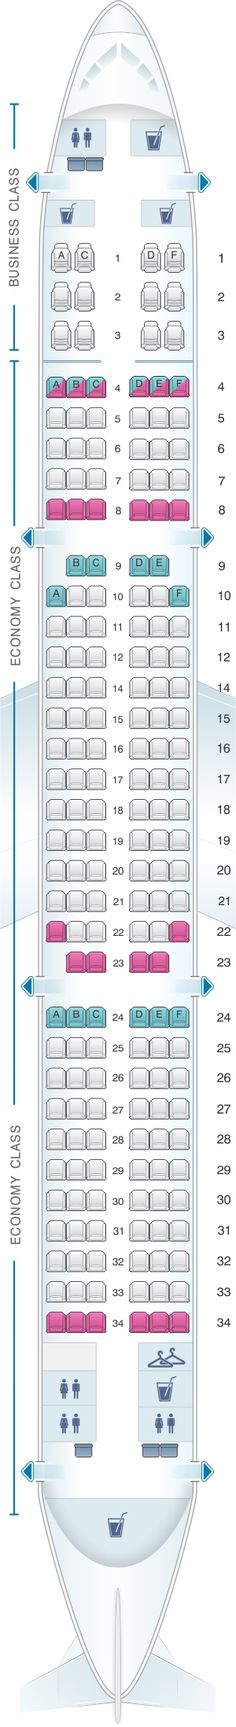 Seat Map Turkish Airlines Airbus A321 200